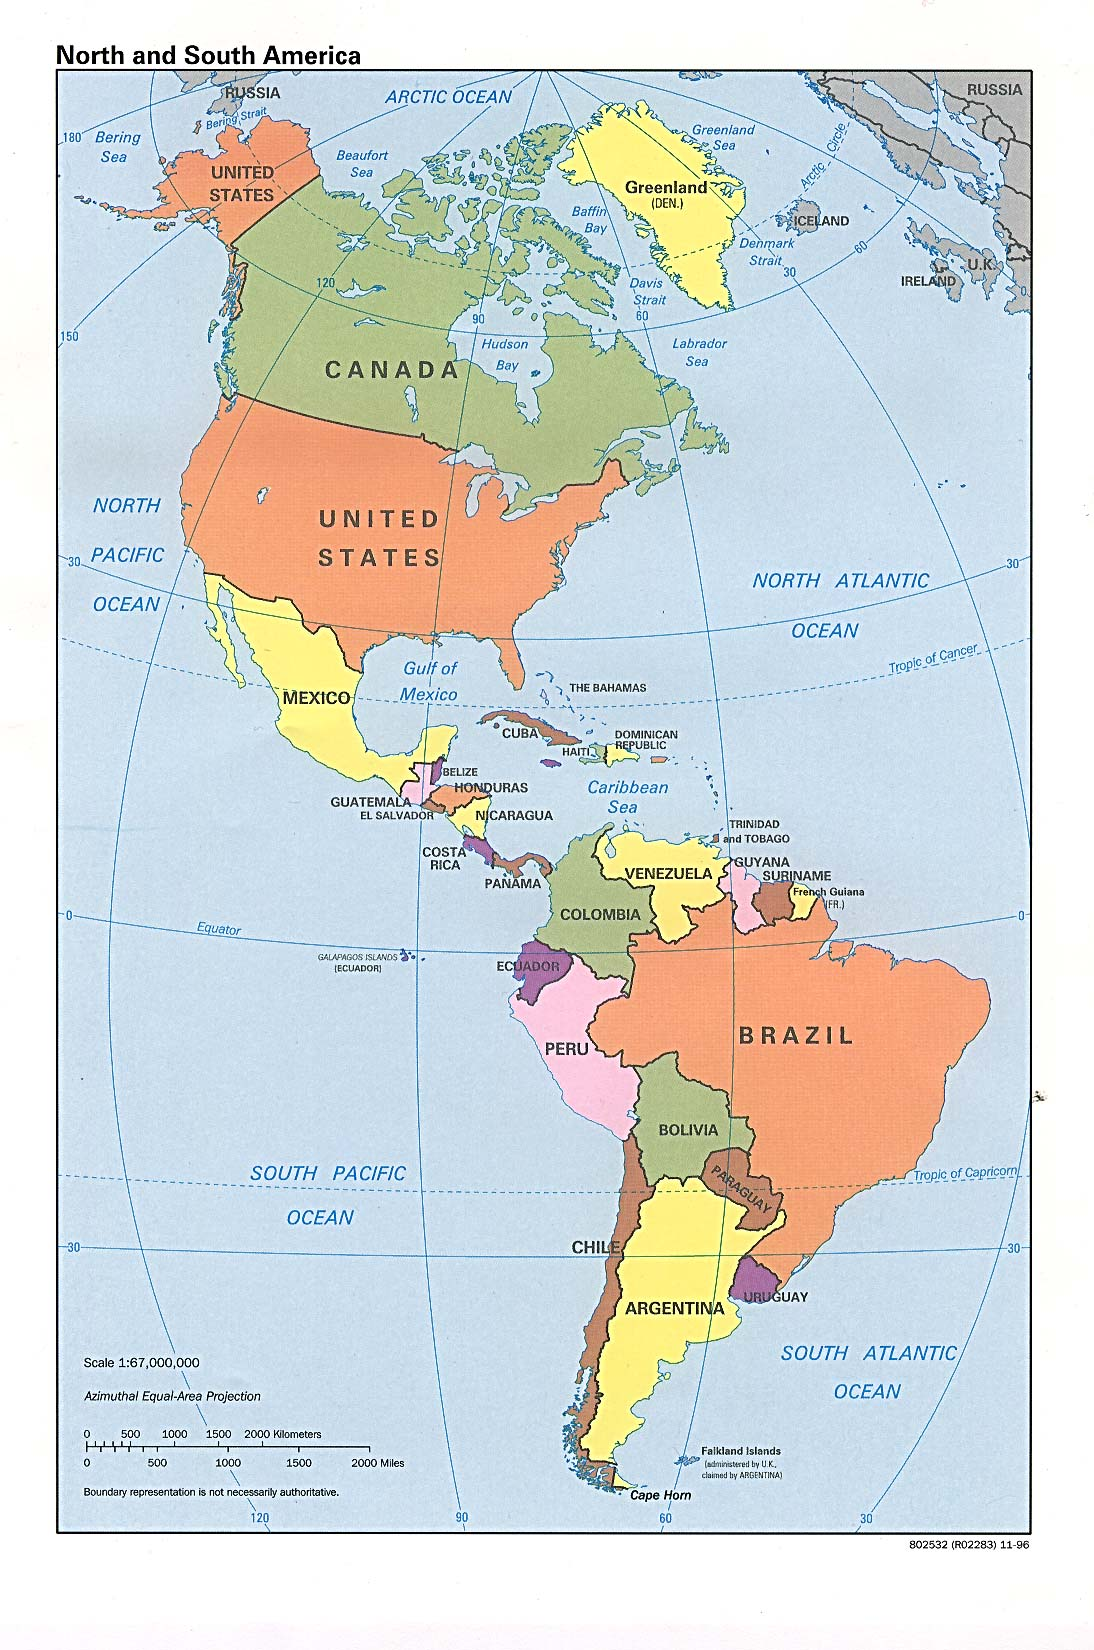 americas_pol96 Panama C On A Map Of South America on tierra del fuego on a map of south america, new granada on a map of south america, lake titicaca on a map of south america, amazon basin on a map of south america, amazon river on a map of south america,